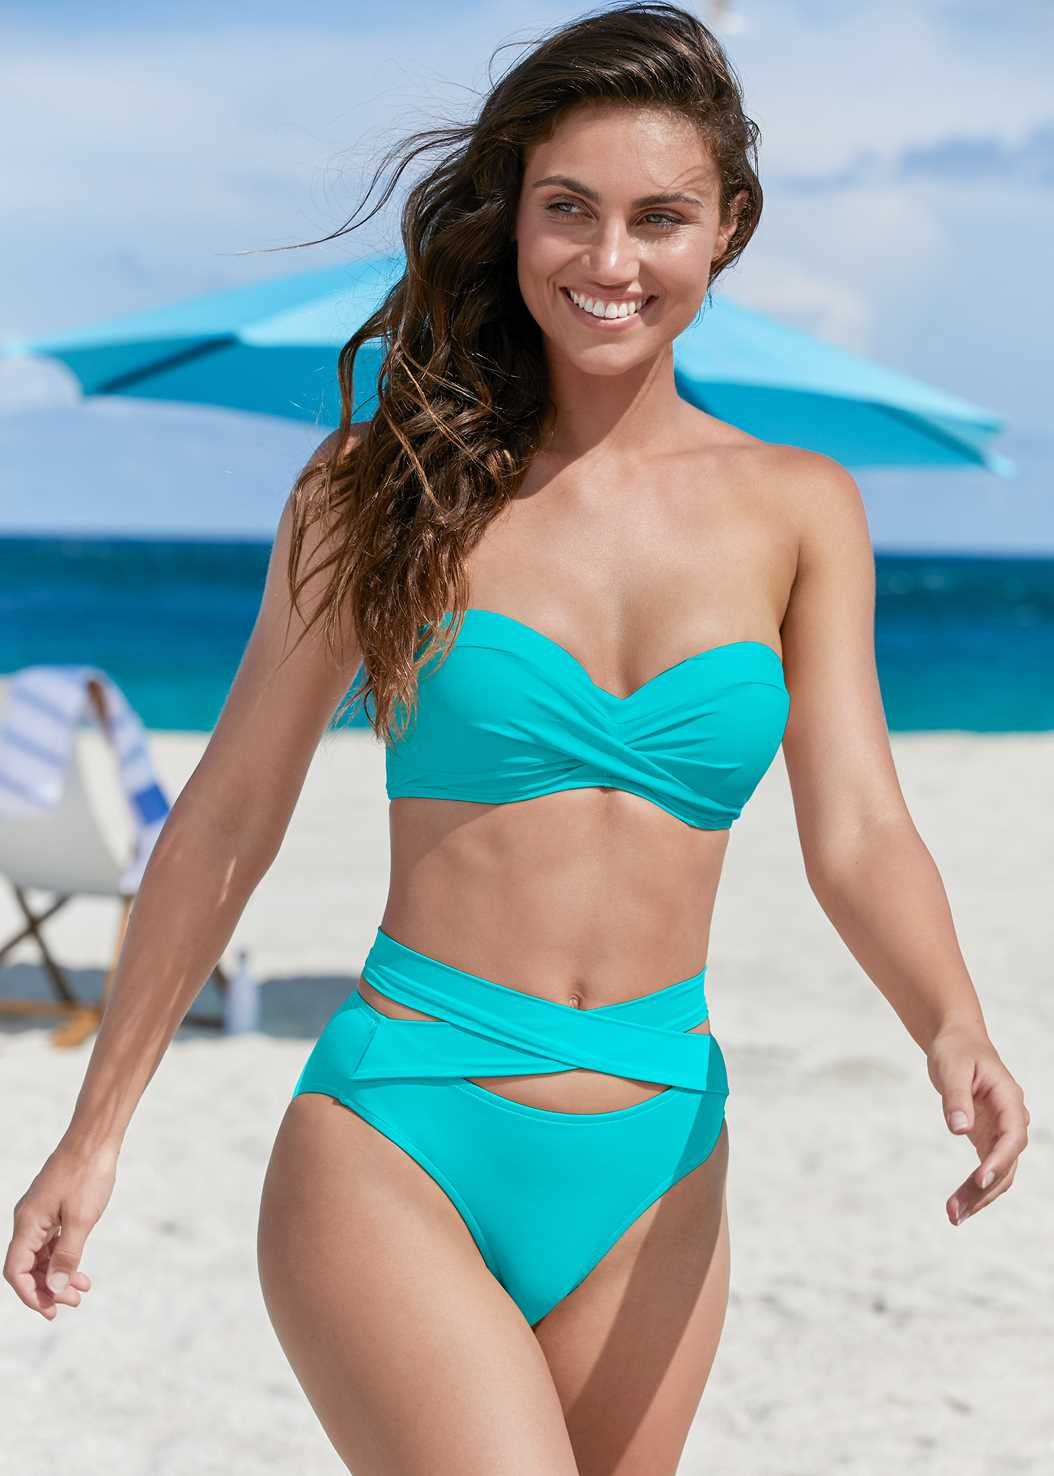 Summer Breeze Bandeau Top,Wrapped Mid Rise Bottom